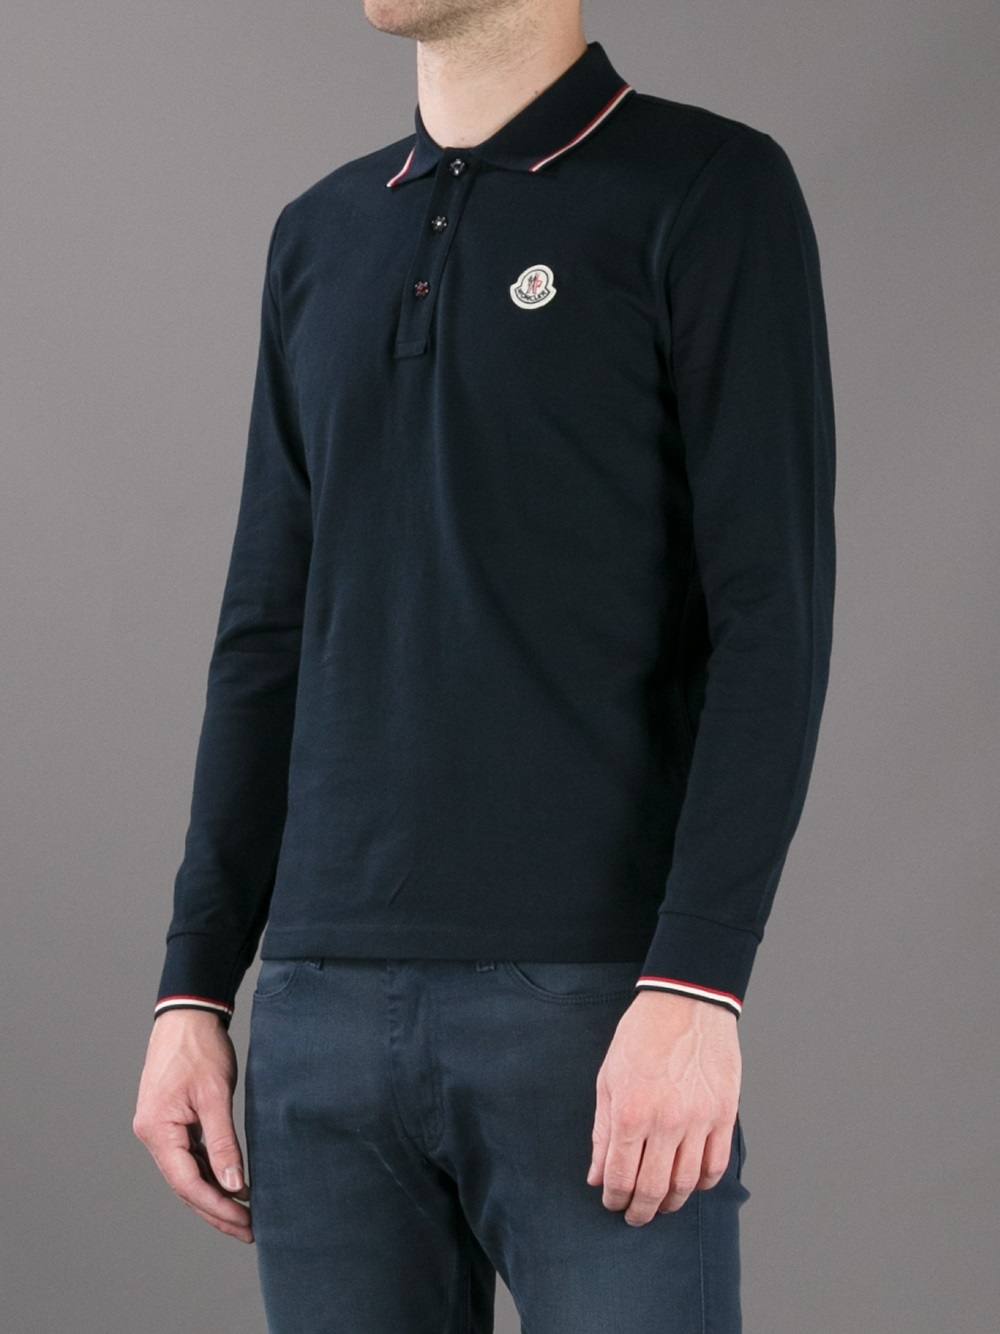 moncler polo navy white collar